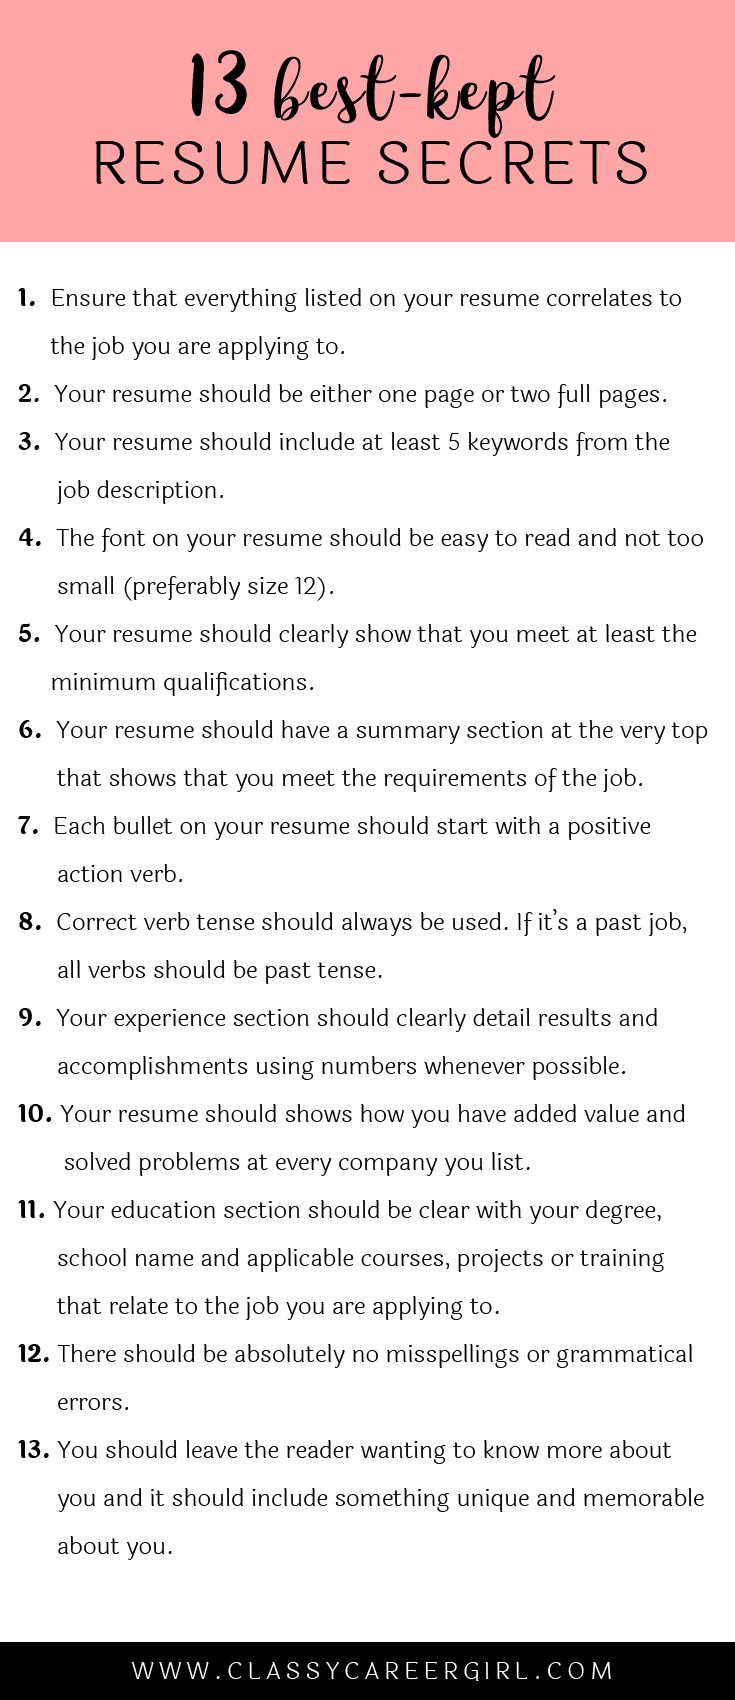 Opposenewapstandardsus  Fascinating  Ideas About Resume On Pinterest  Cv Format Resume Cv And  With Outstanding Some Hiring Managers Will Toss Your Resume Out If You Dont Know These  With Awesome Resume Templates Free Word Also Maintenance Worker Resume In Addition The Resume Place And How To Do A Resume On Word As Well As How To Write An Objective On A Resume Additionally Material Handler Resume From Pinterestcom With Opposenewapstandardsus  Outstanding  Ideas About Resume On Pinterest  Cv Format Resume Cv And  With Awesome Some Hiring Managers Will Toss Your Resume Out If You Dont Know These  And Fascinating Resume Templates Free Word Also Maintenance Worker Resume In Addition The Resume Place From Pinterestcom